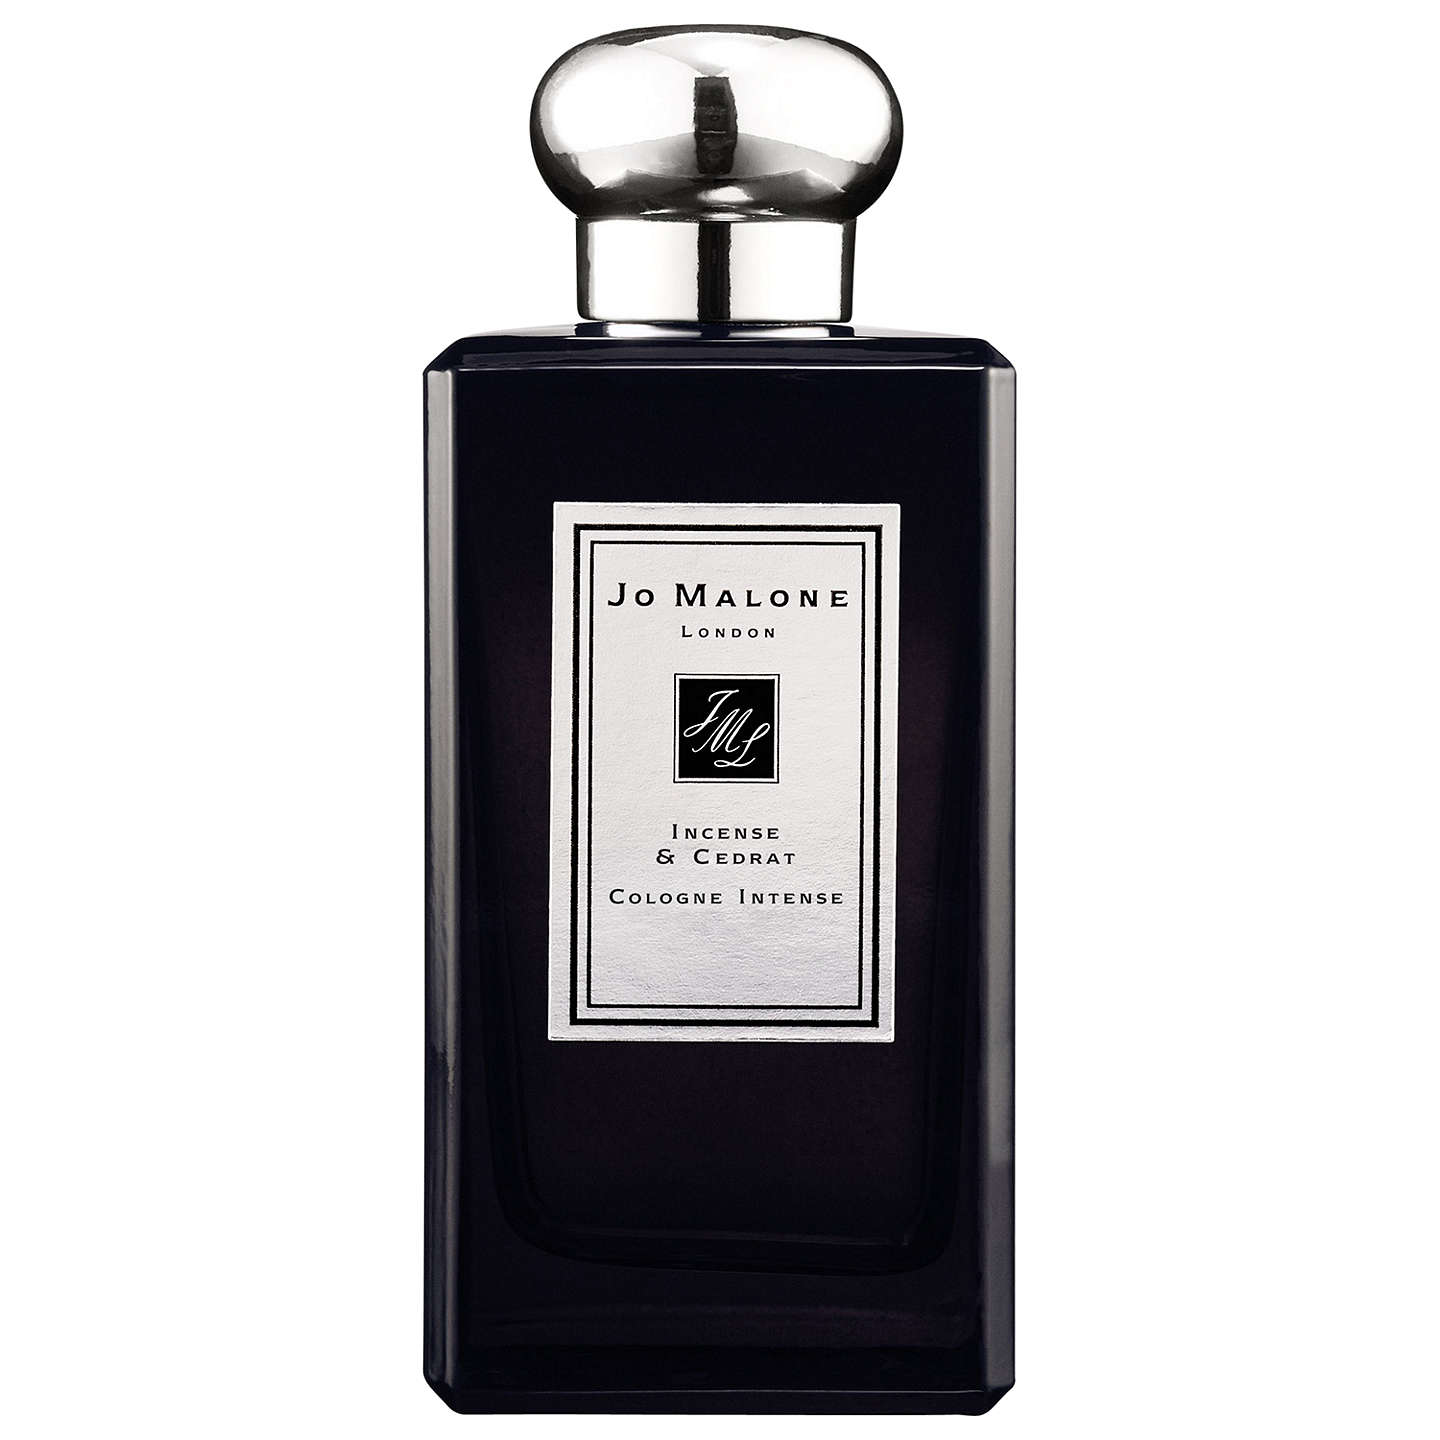 Купить Одеколон Jo Malone, Jo Malone Incense & Cedrat 100ml, Великобритания